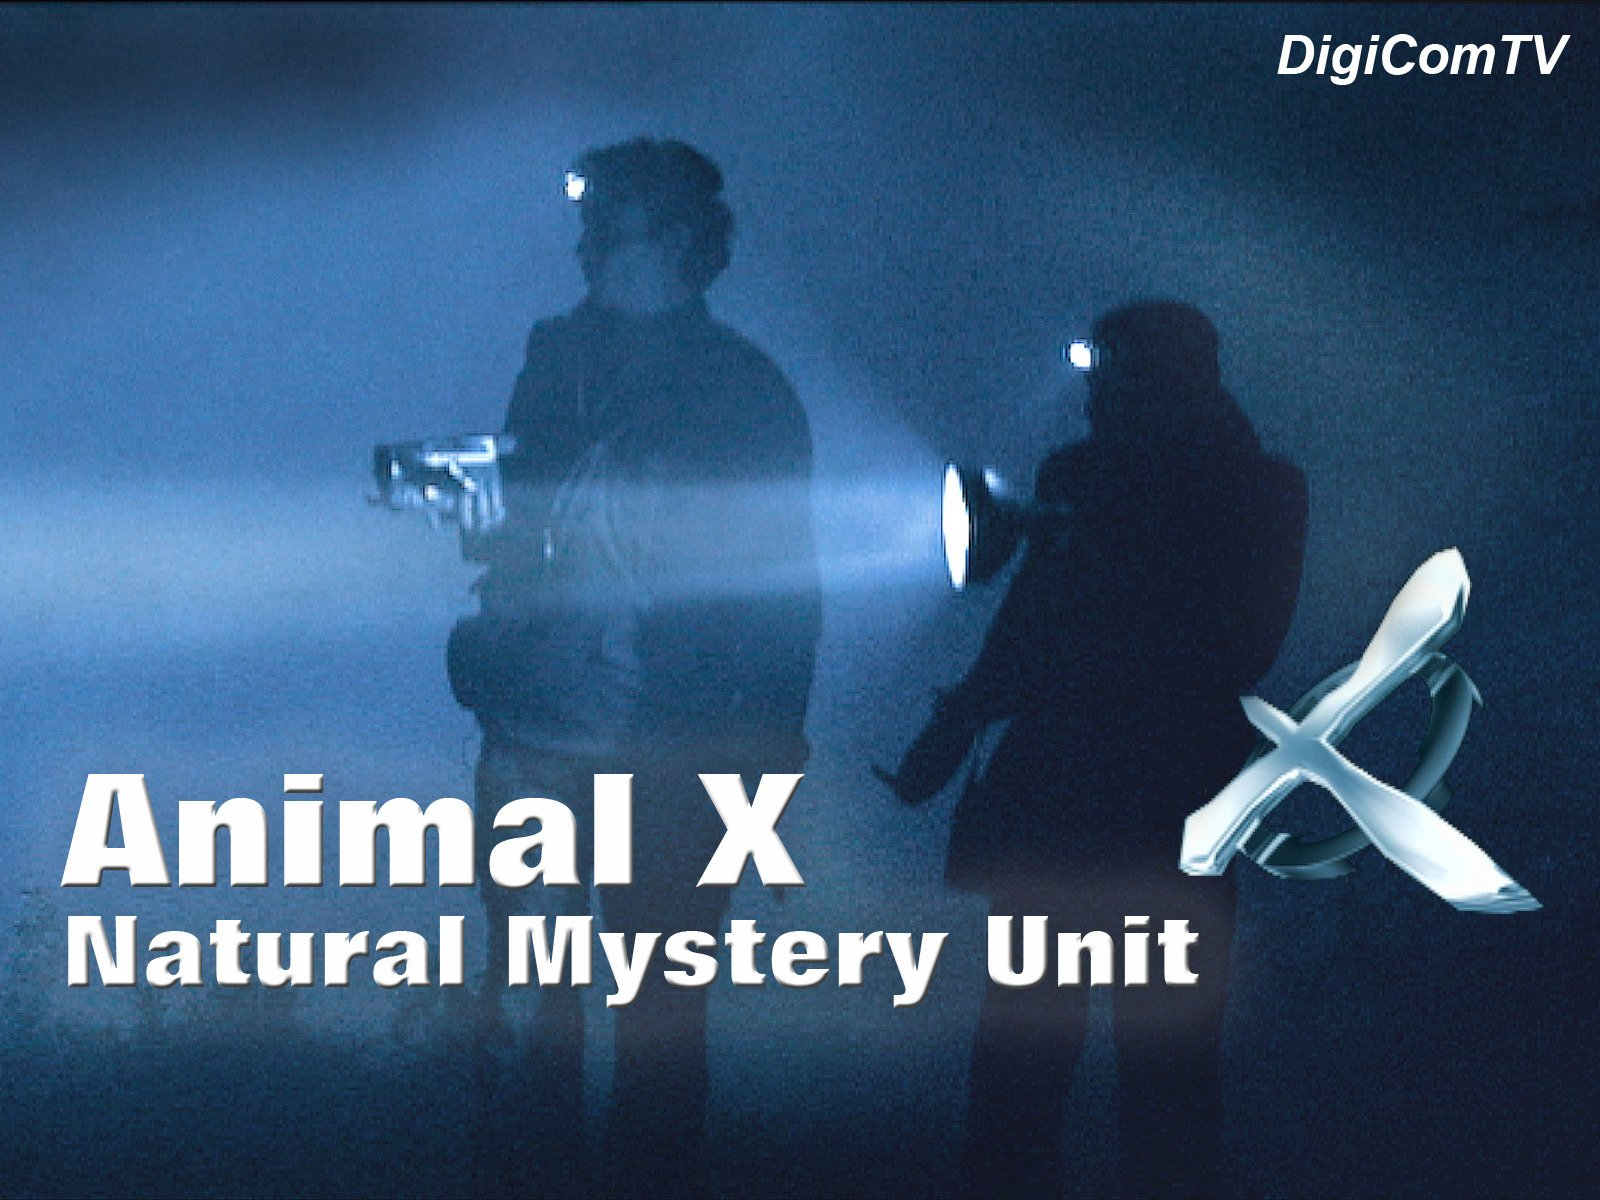 Animal X - The Natural Mystery Unit